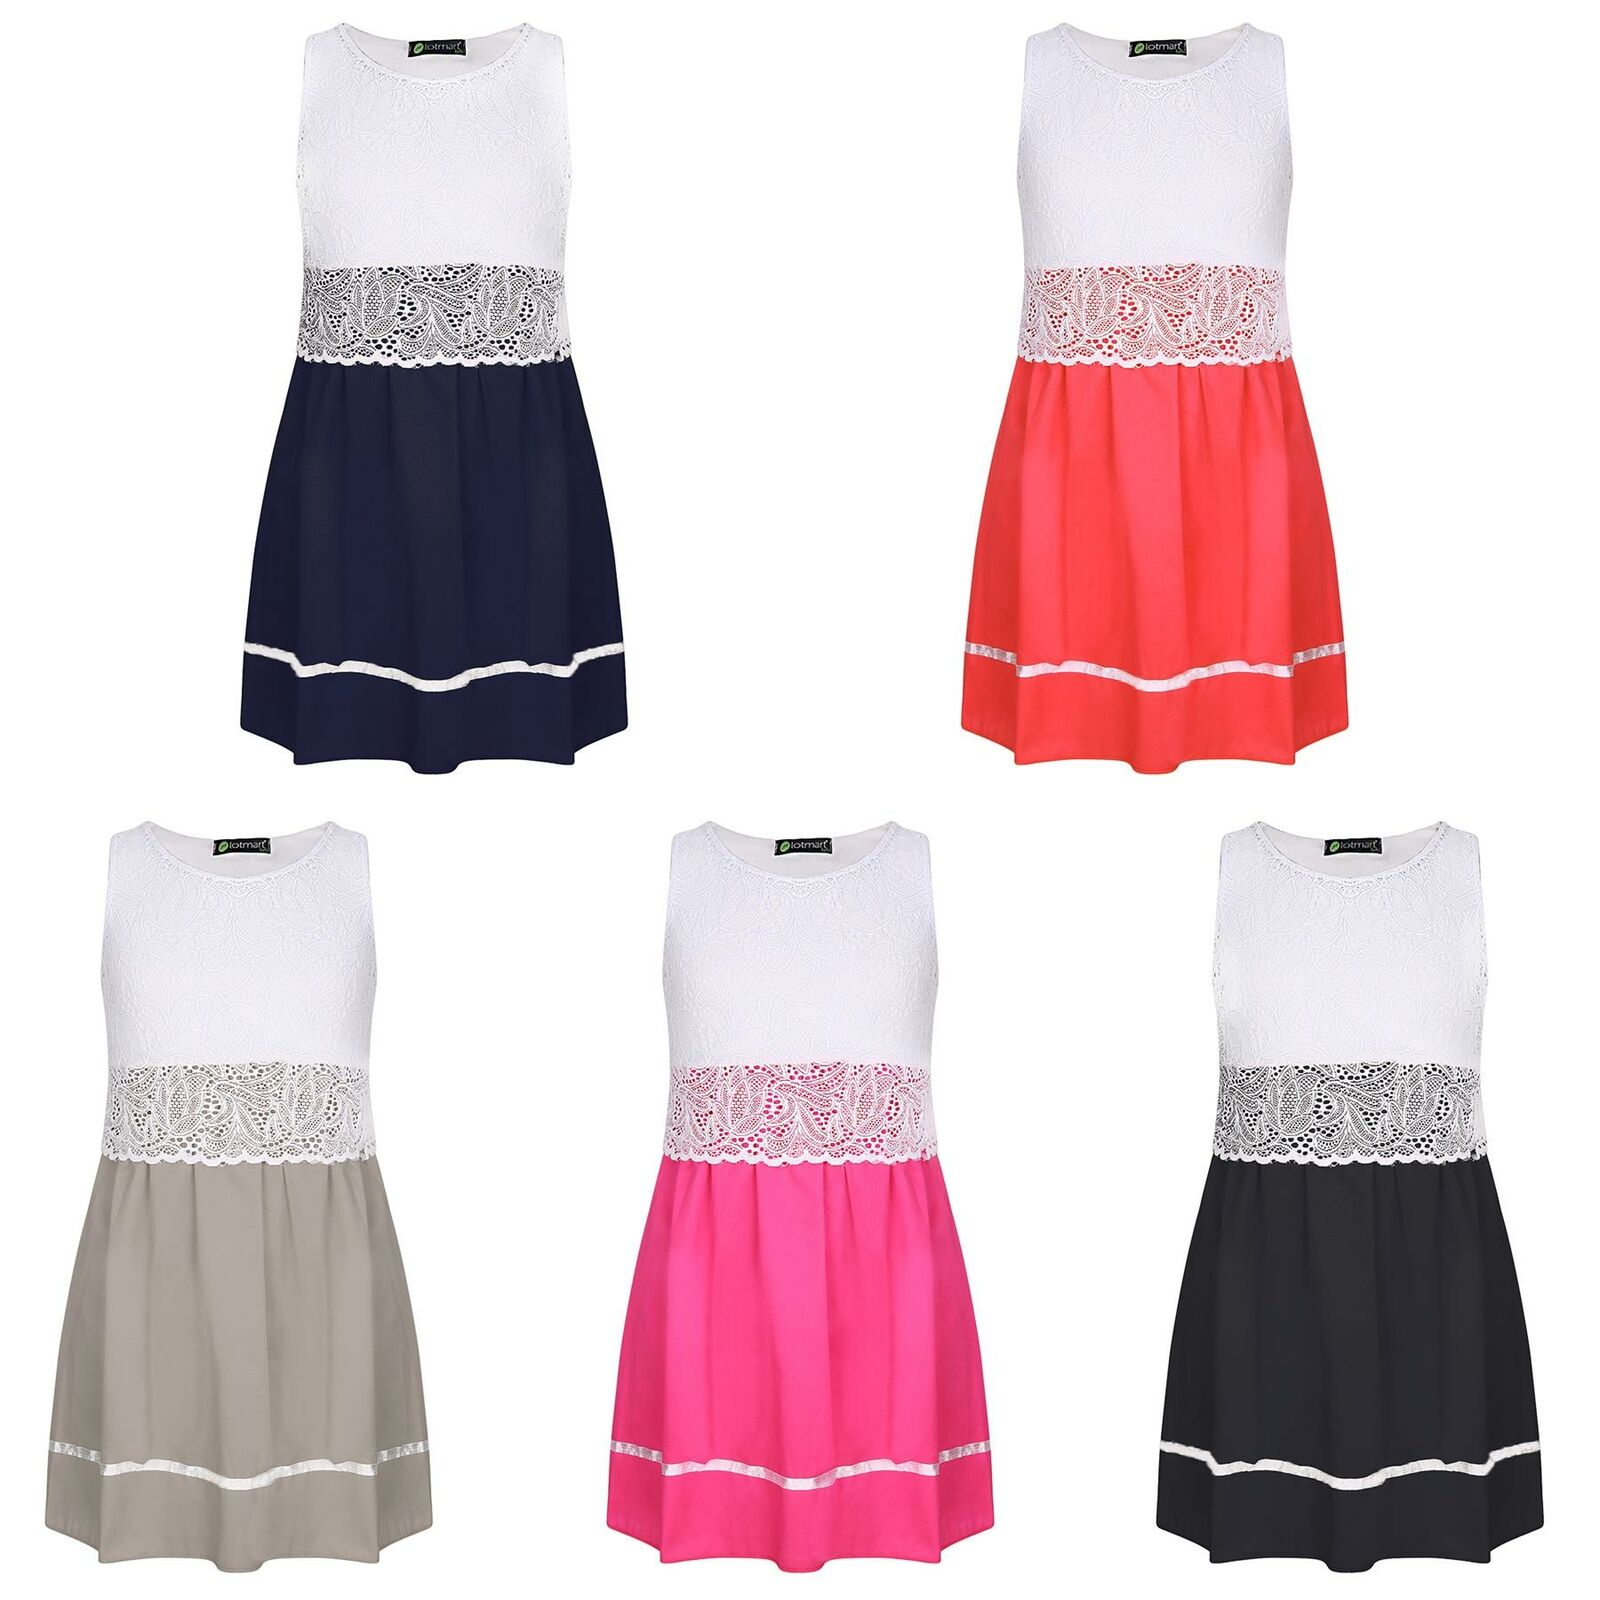 Girls Dress Party Casual Sleeveless Lace Top Ribbon Skirt Detail Size 3-14 Years